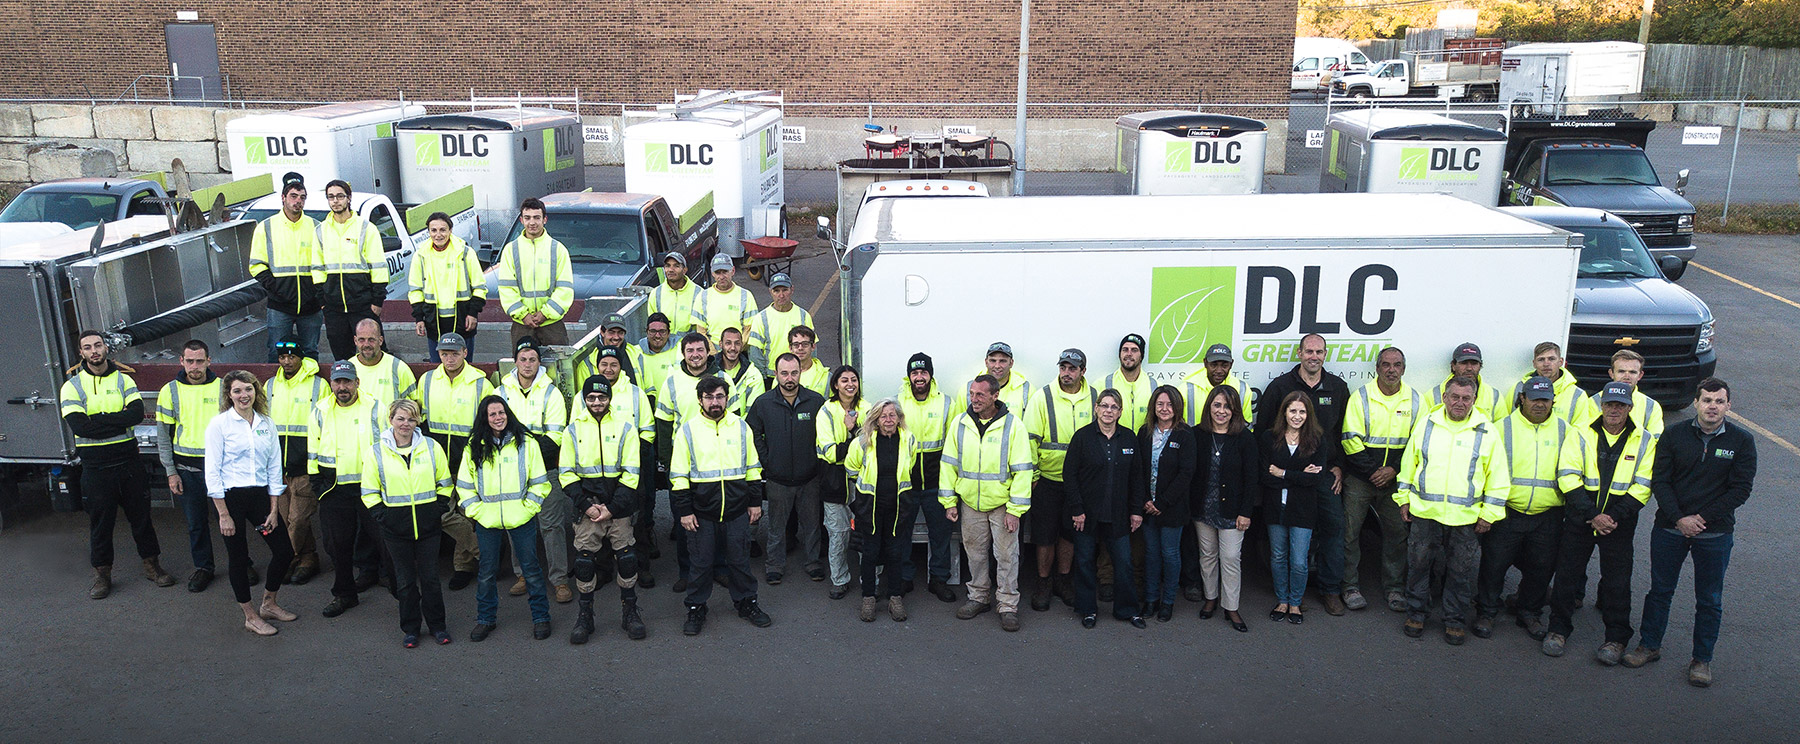 Photo of DLC Teams in their parking lot